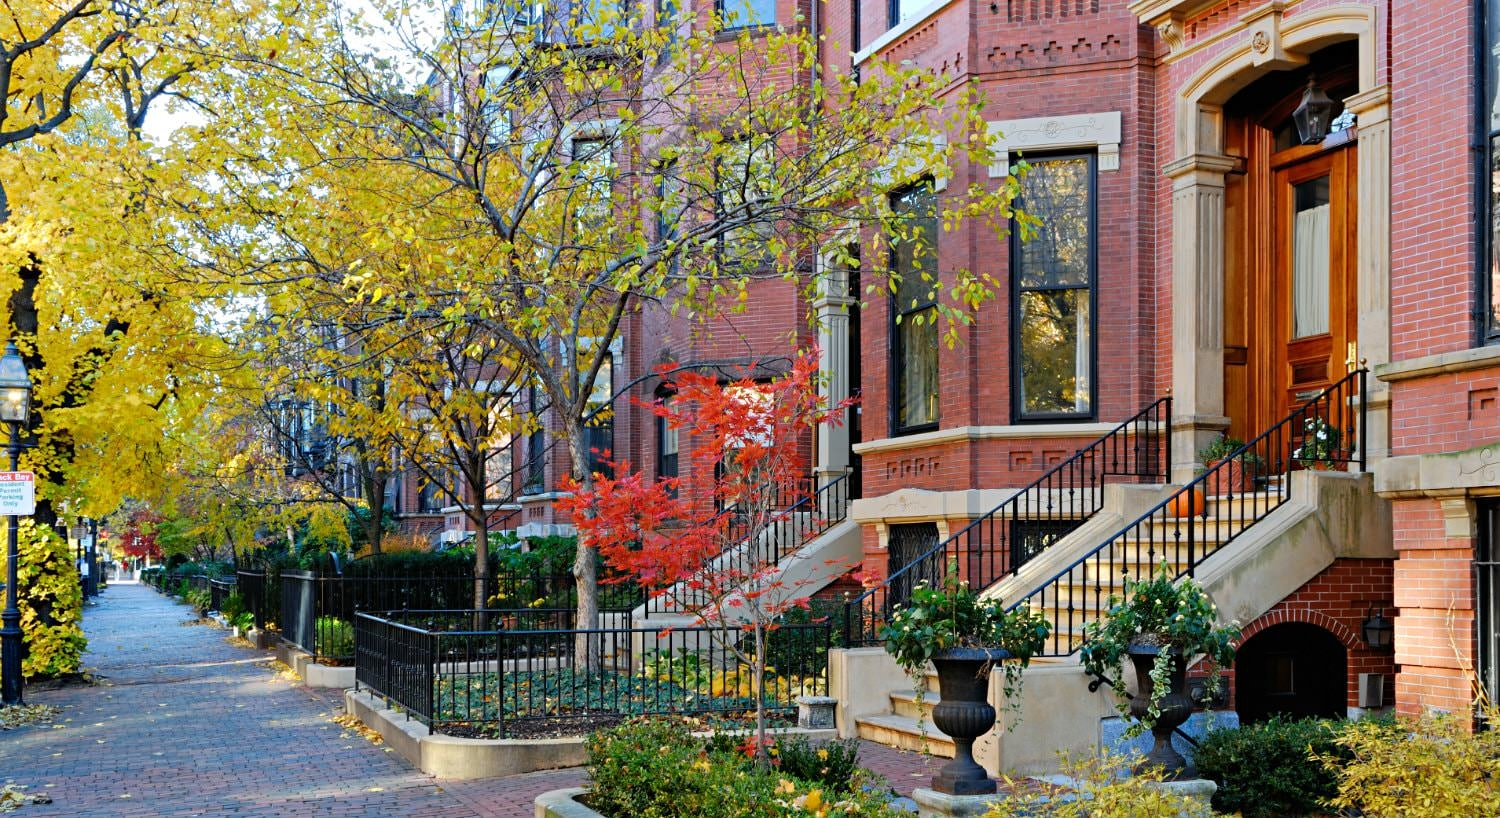 Row of red brick brownstones with black iron fences and autumn yellow trees